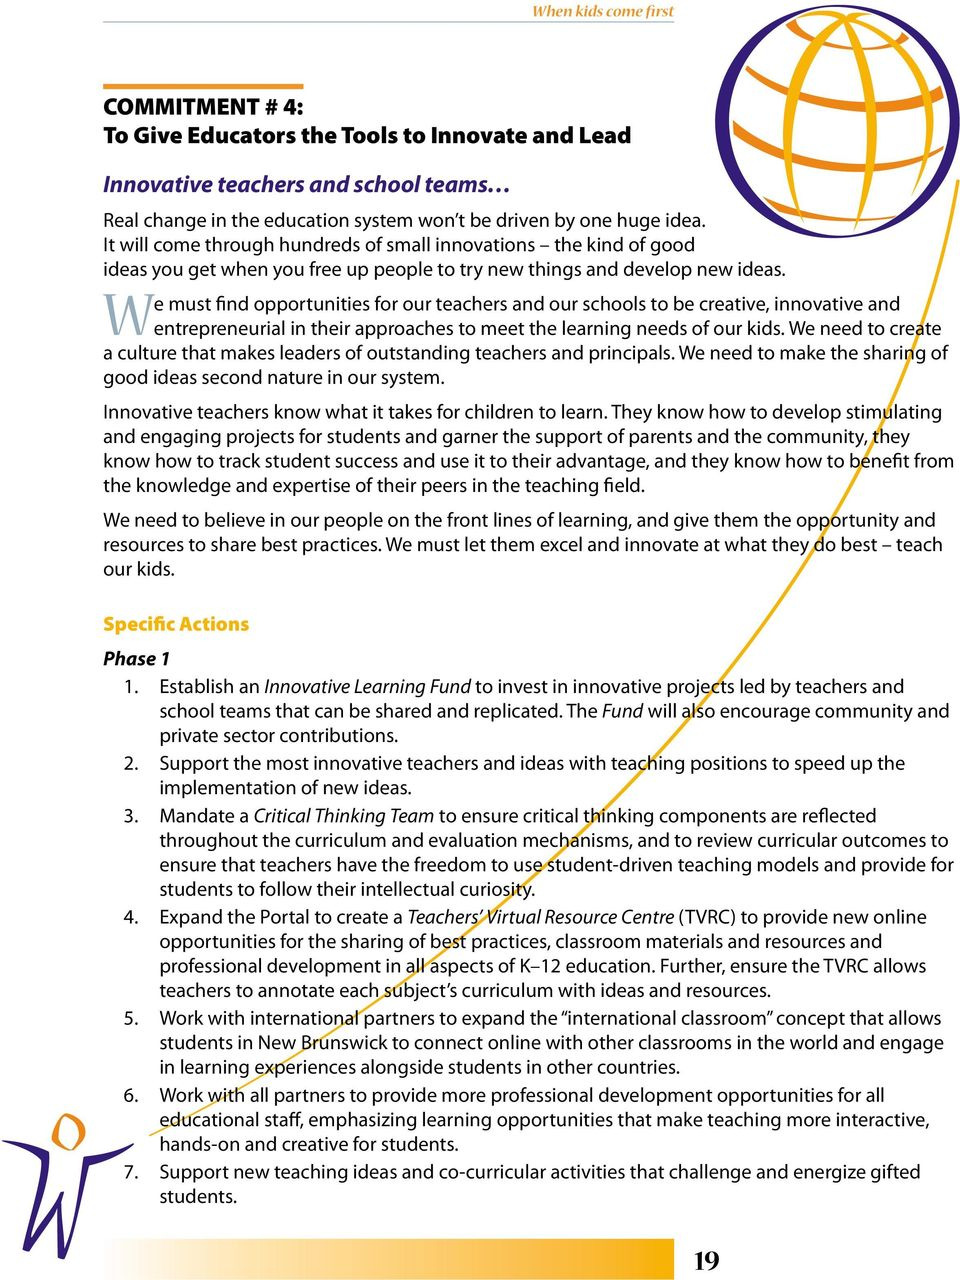 We must find opportunities for our teachers and our schools to be creative, innovative and entrepreneurial in their approaches to meet the learning needs of our kids.